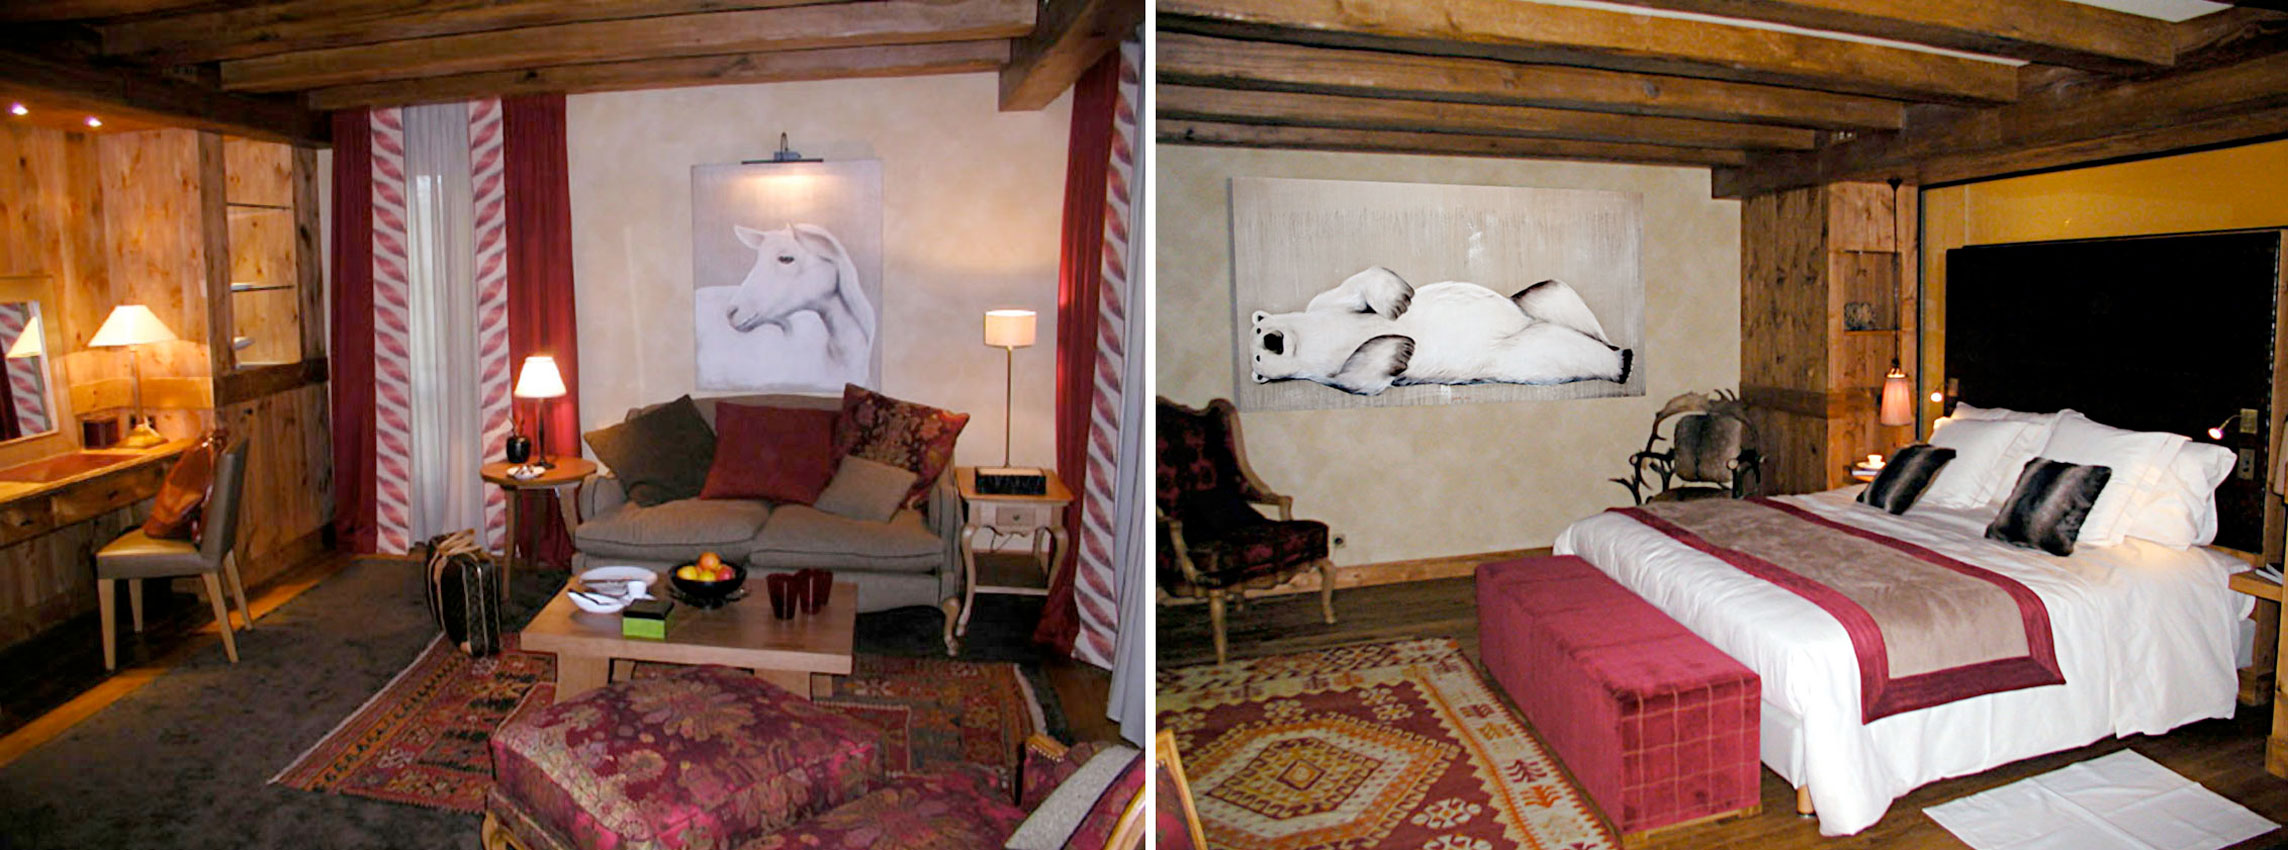 chambre cheval blanc HOTEL%20CHEVAL%20BLANC%20COURCHEVEL%2CLUXURY%20MOUNTAIN%20RESIDENCE%2CFRENCH%20ALPS%2CSKI Thierry Bisch painter animals painting art decoration hotel design interior luxury nature biodiversity conservation